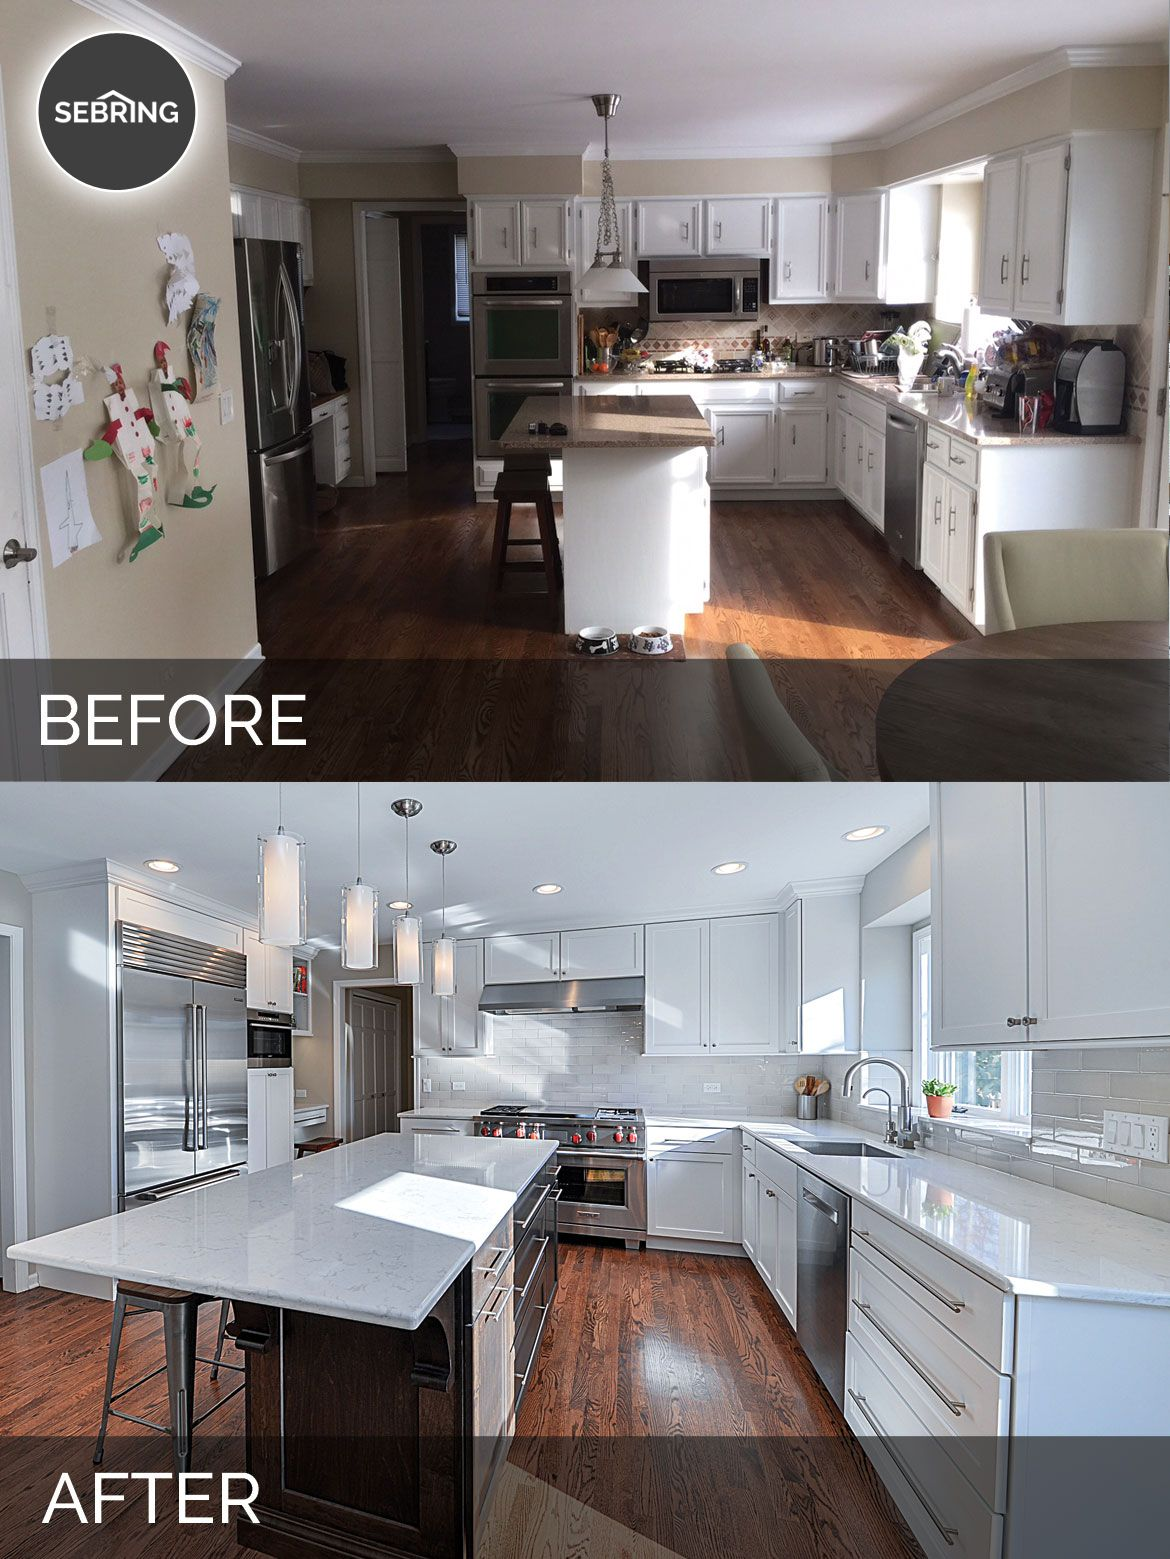 Before and After Kitchen Remodeling - Sebring Services | Kitchen ...